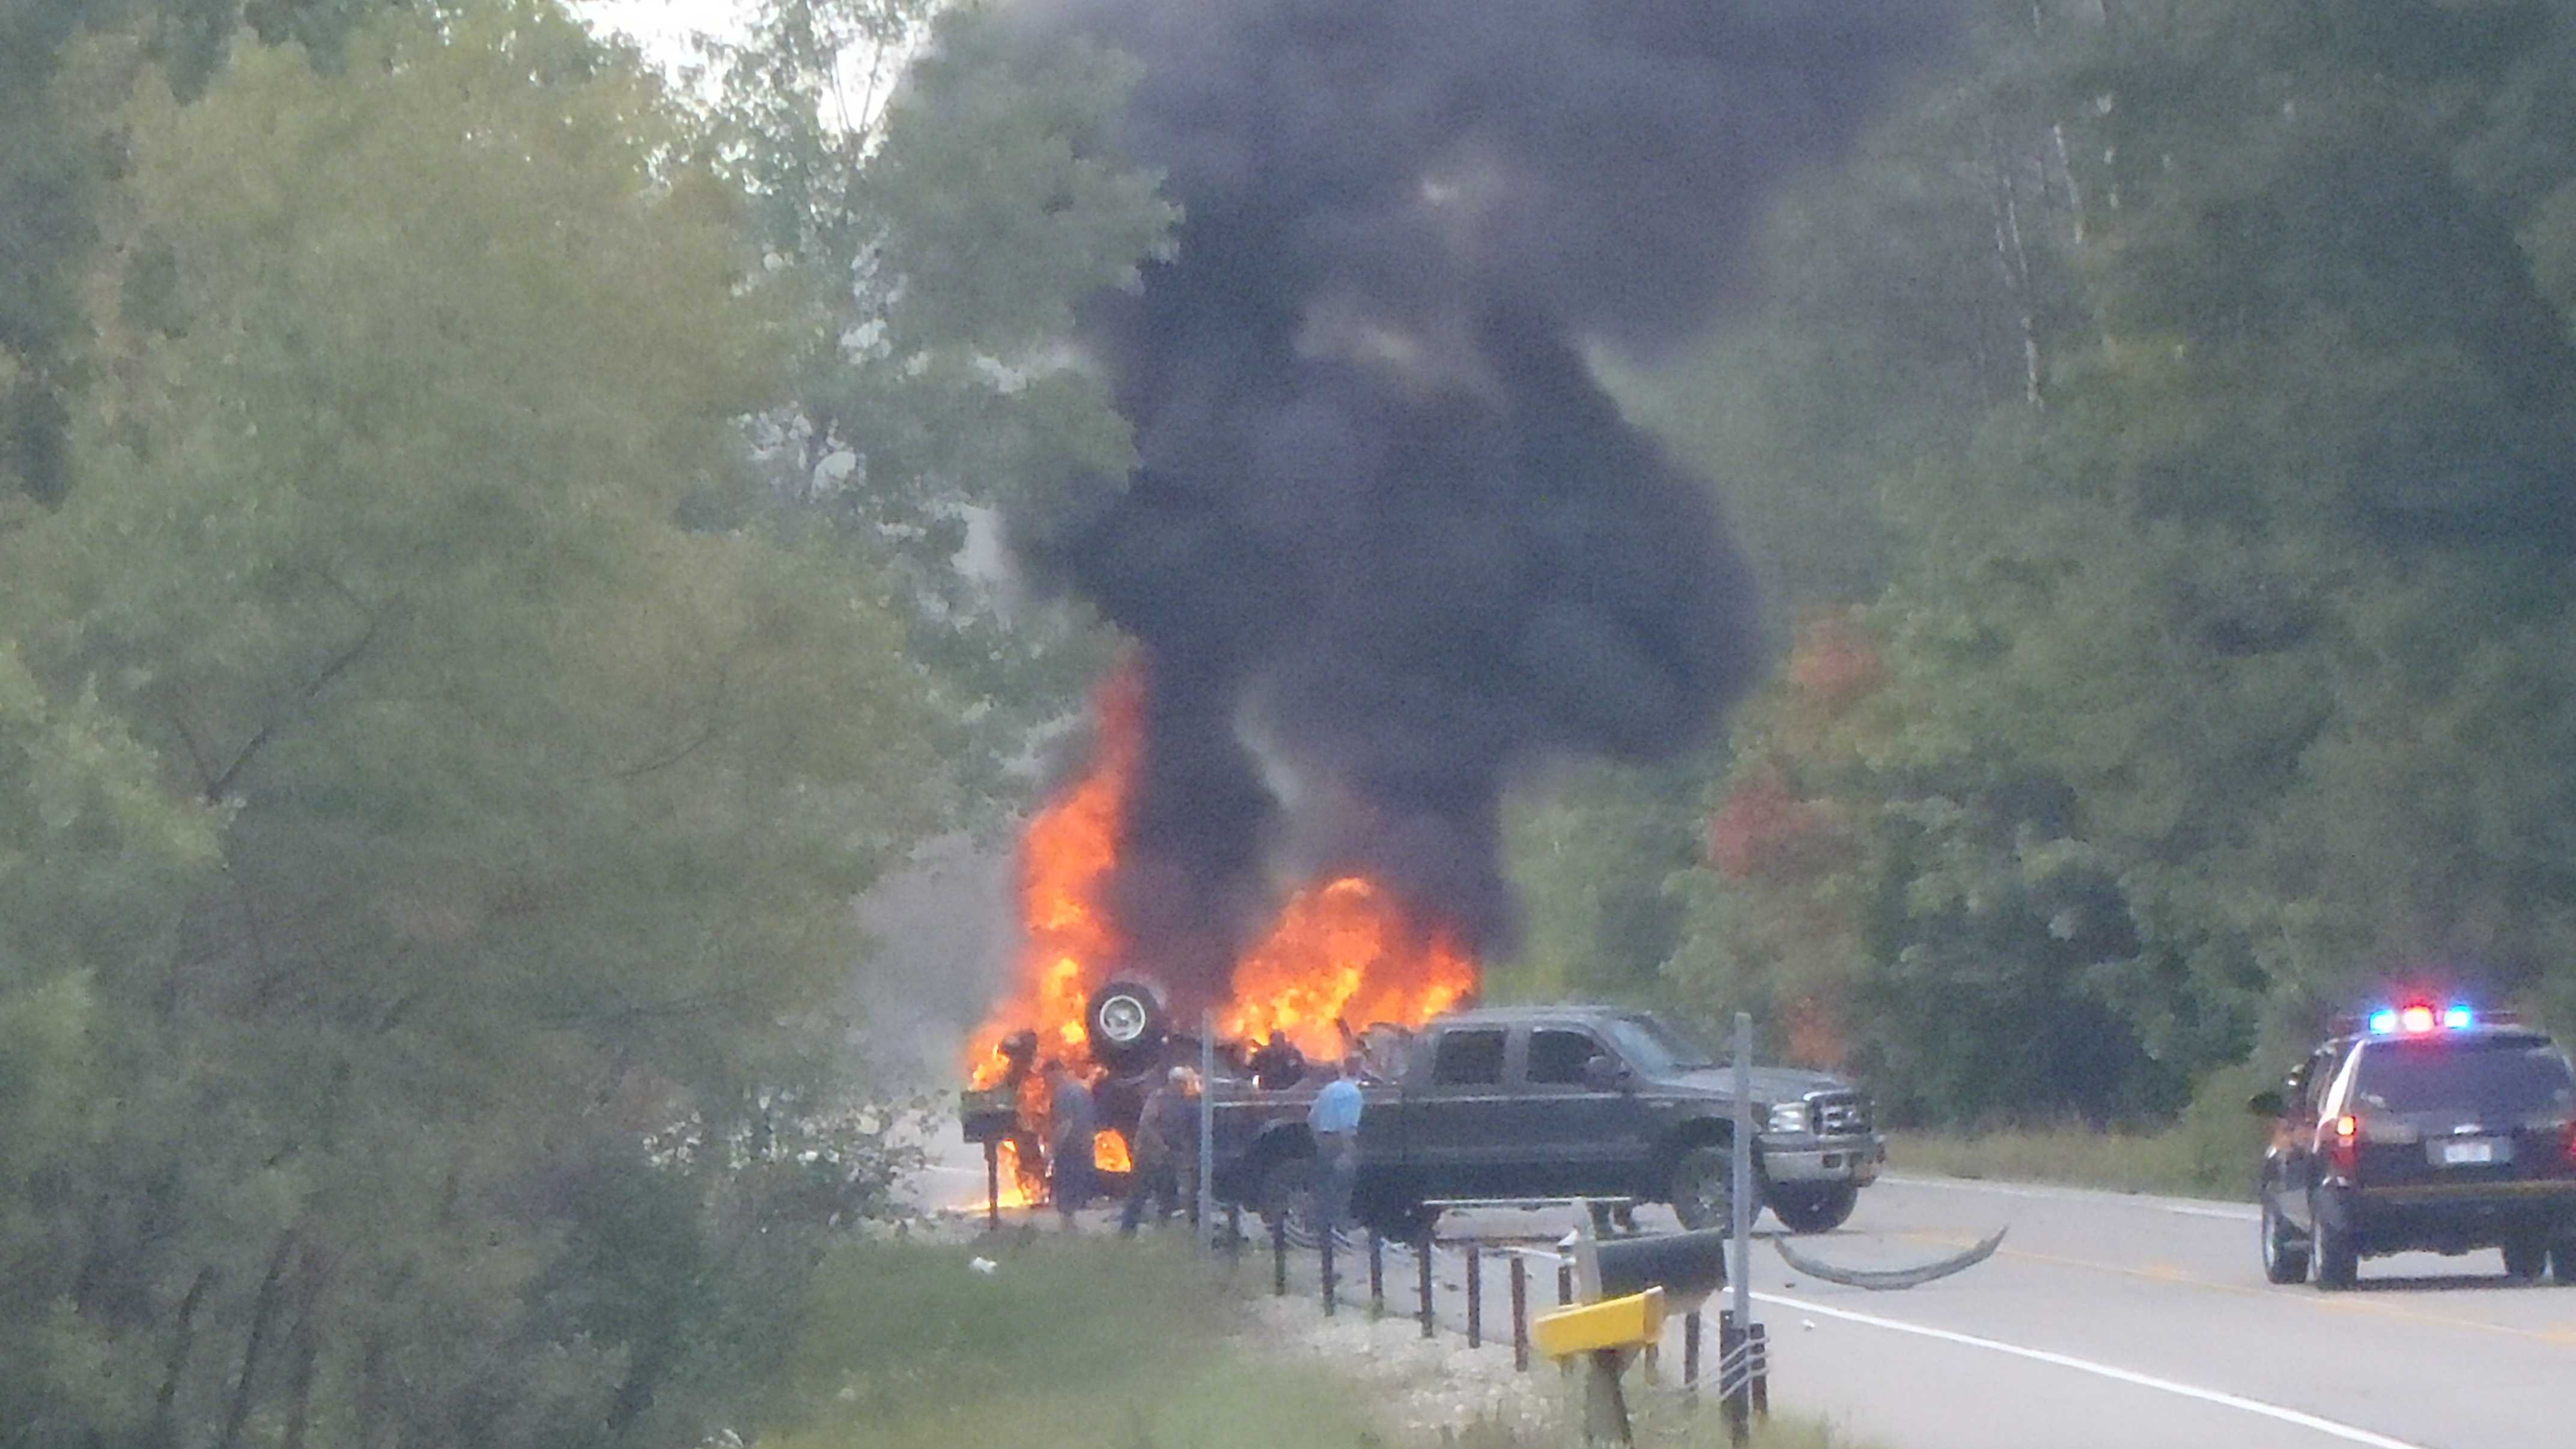 082612 3 killed in 2-vehicle collision in northern NY